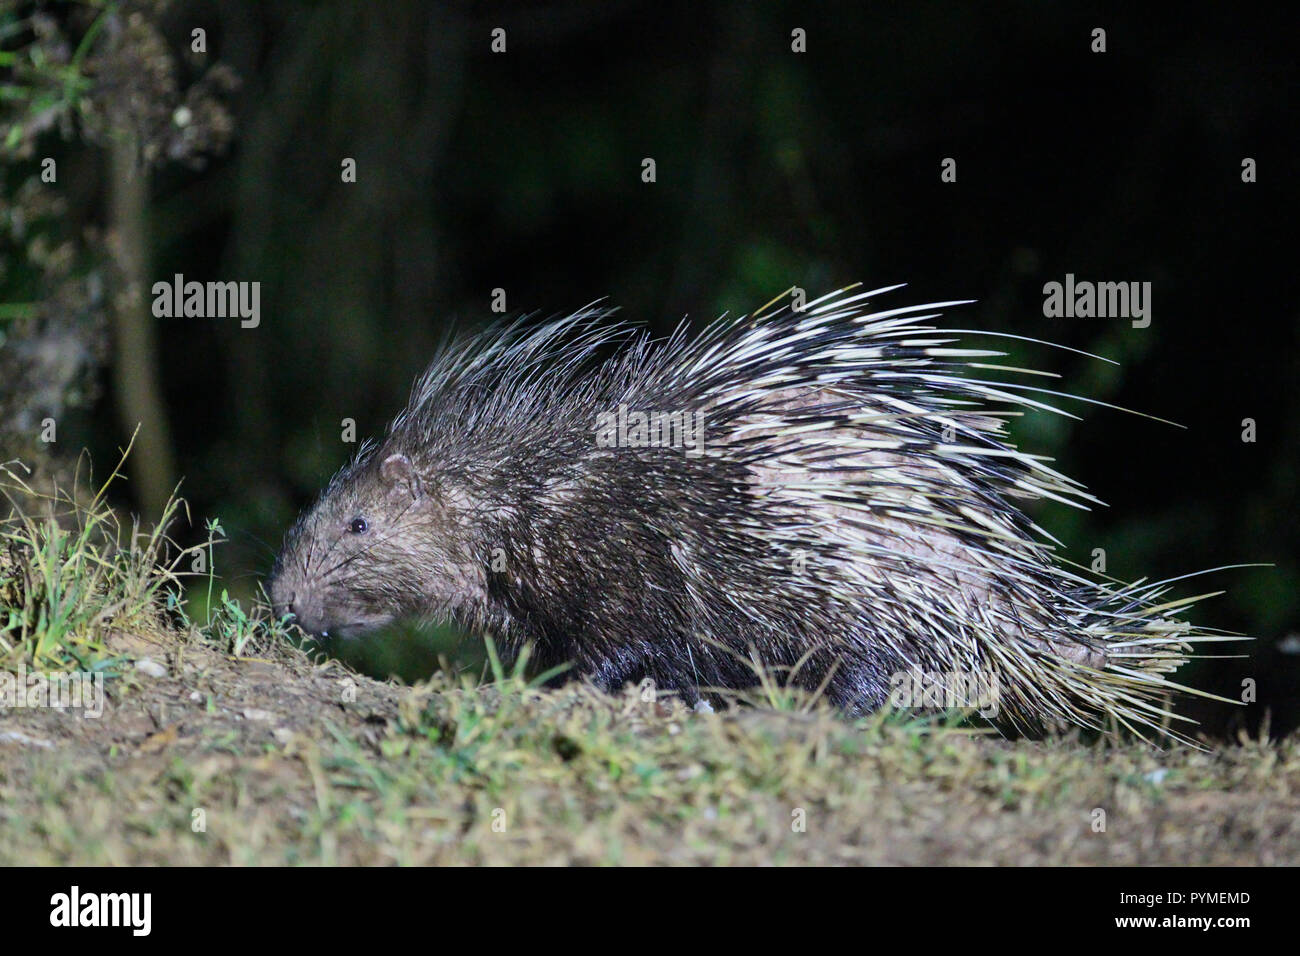 Malayan Porcupine (Hystrix brachyura) foraging at night in the forest, Kaeng Krachan National Park, Thailand - Stock Image